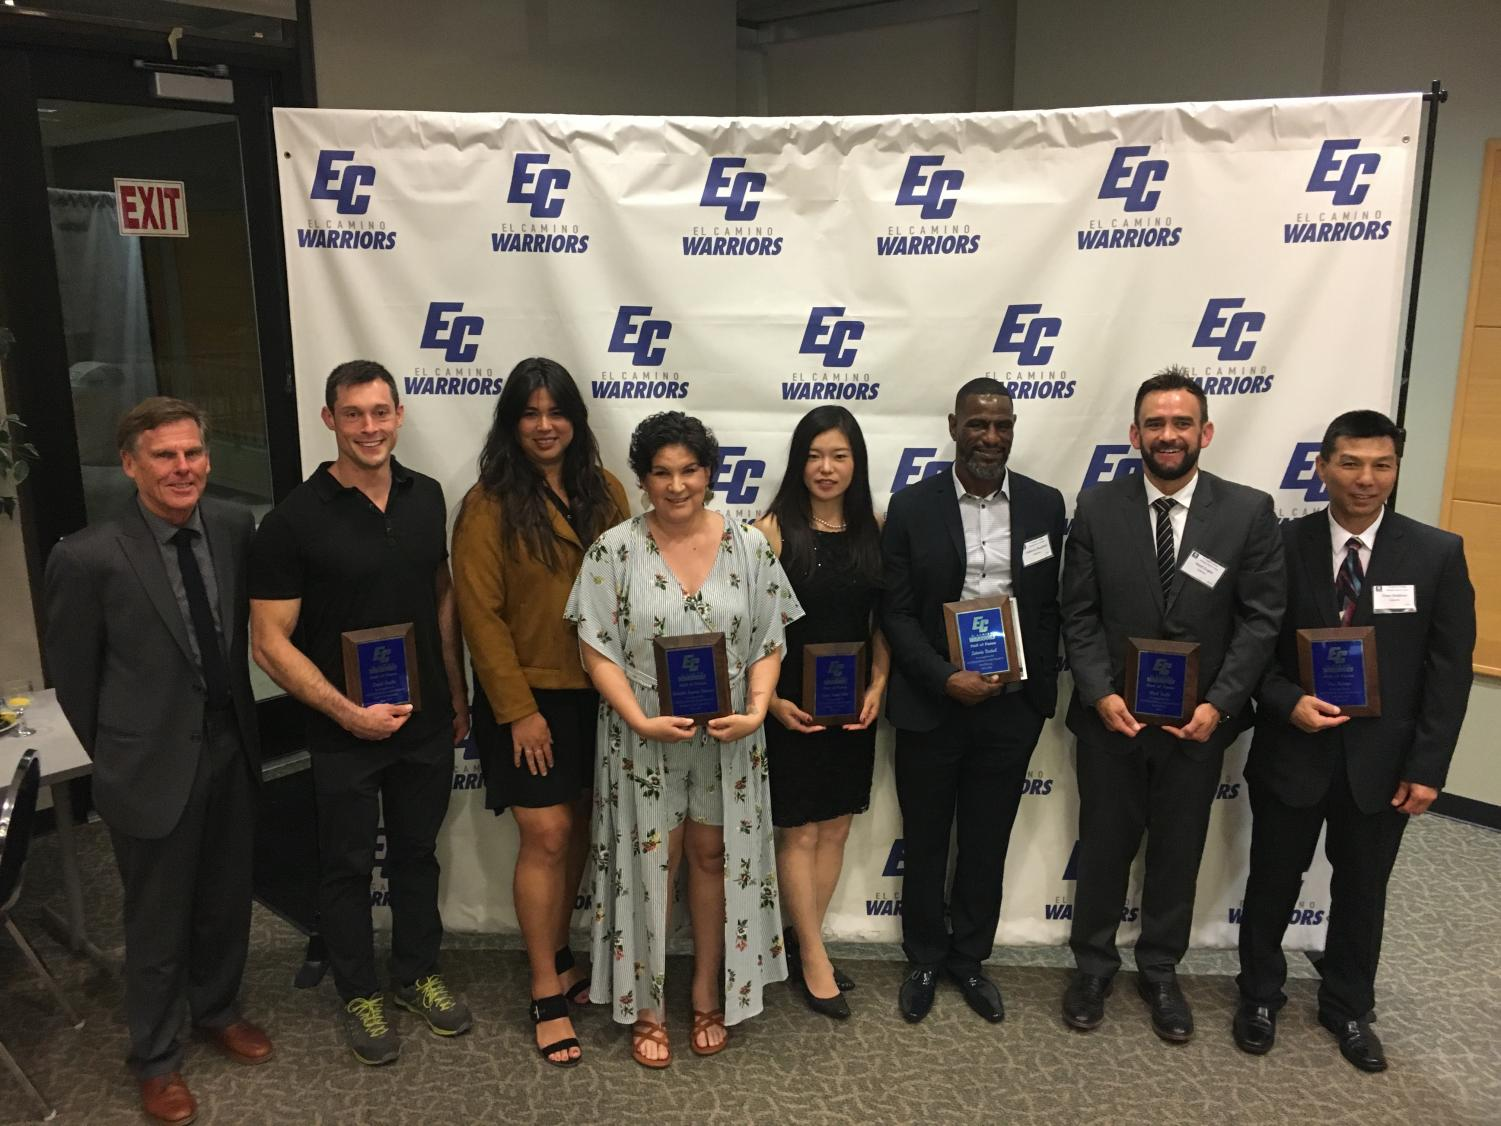 The newest members of the El Camino College Athletic Hall of Fame were inducted and honored Thursday, May 23, in the East Dining Room at El Camino College. The Athletic Hall of Fame class of 2019 includes 14 inductees and one team. Photo credit: Melanie Chacon